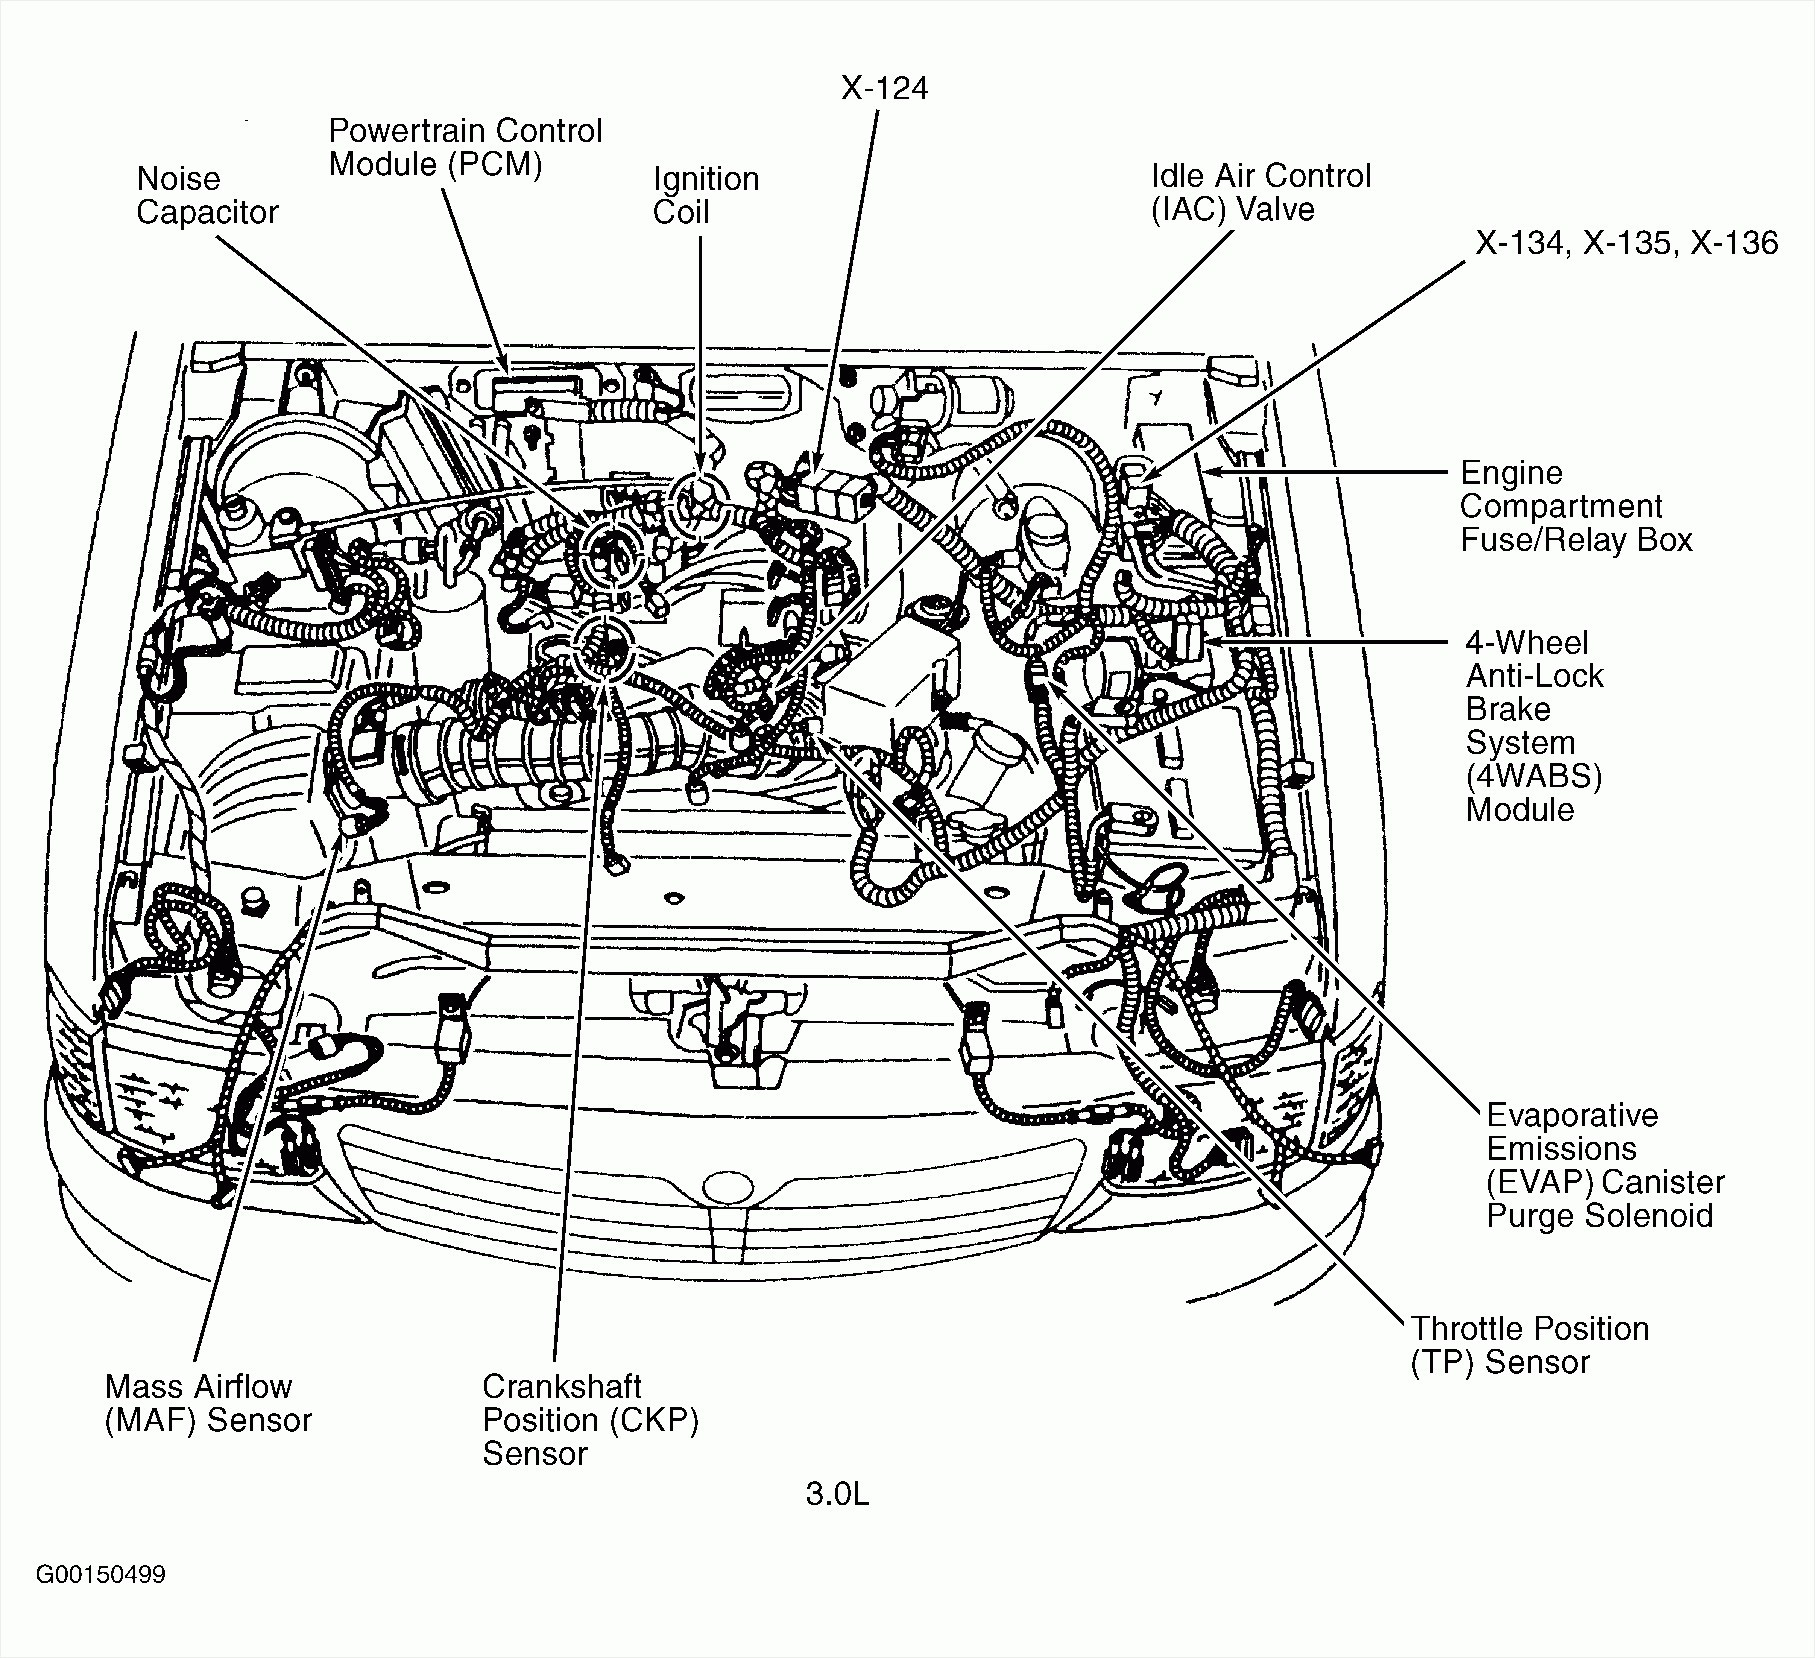 ford escape engine diagram wiring diagram libraries 2002 ford 3 0 v6 engine diagram wiring diagram library2002 ford escape 3 0 engine wiring